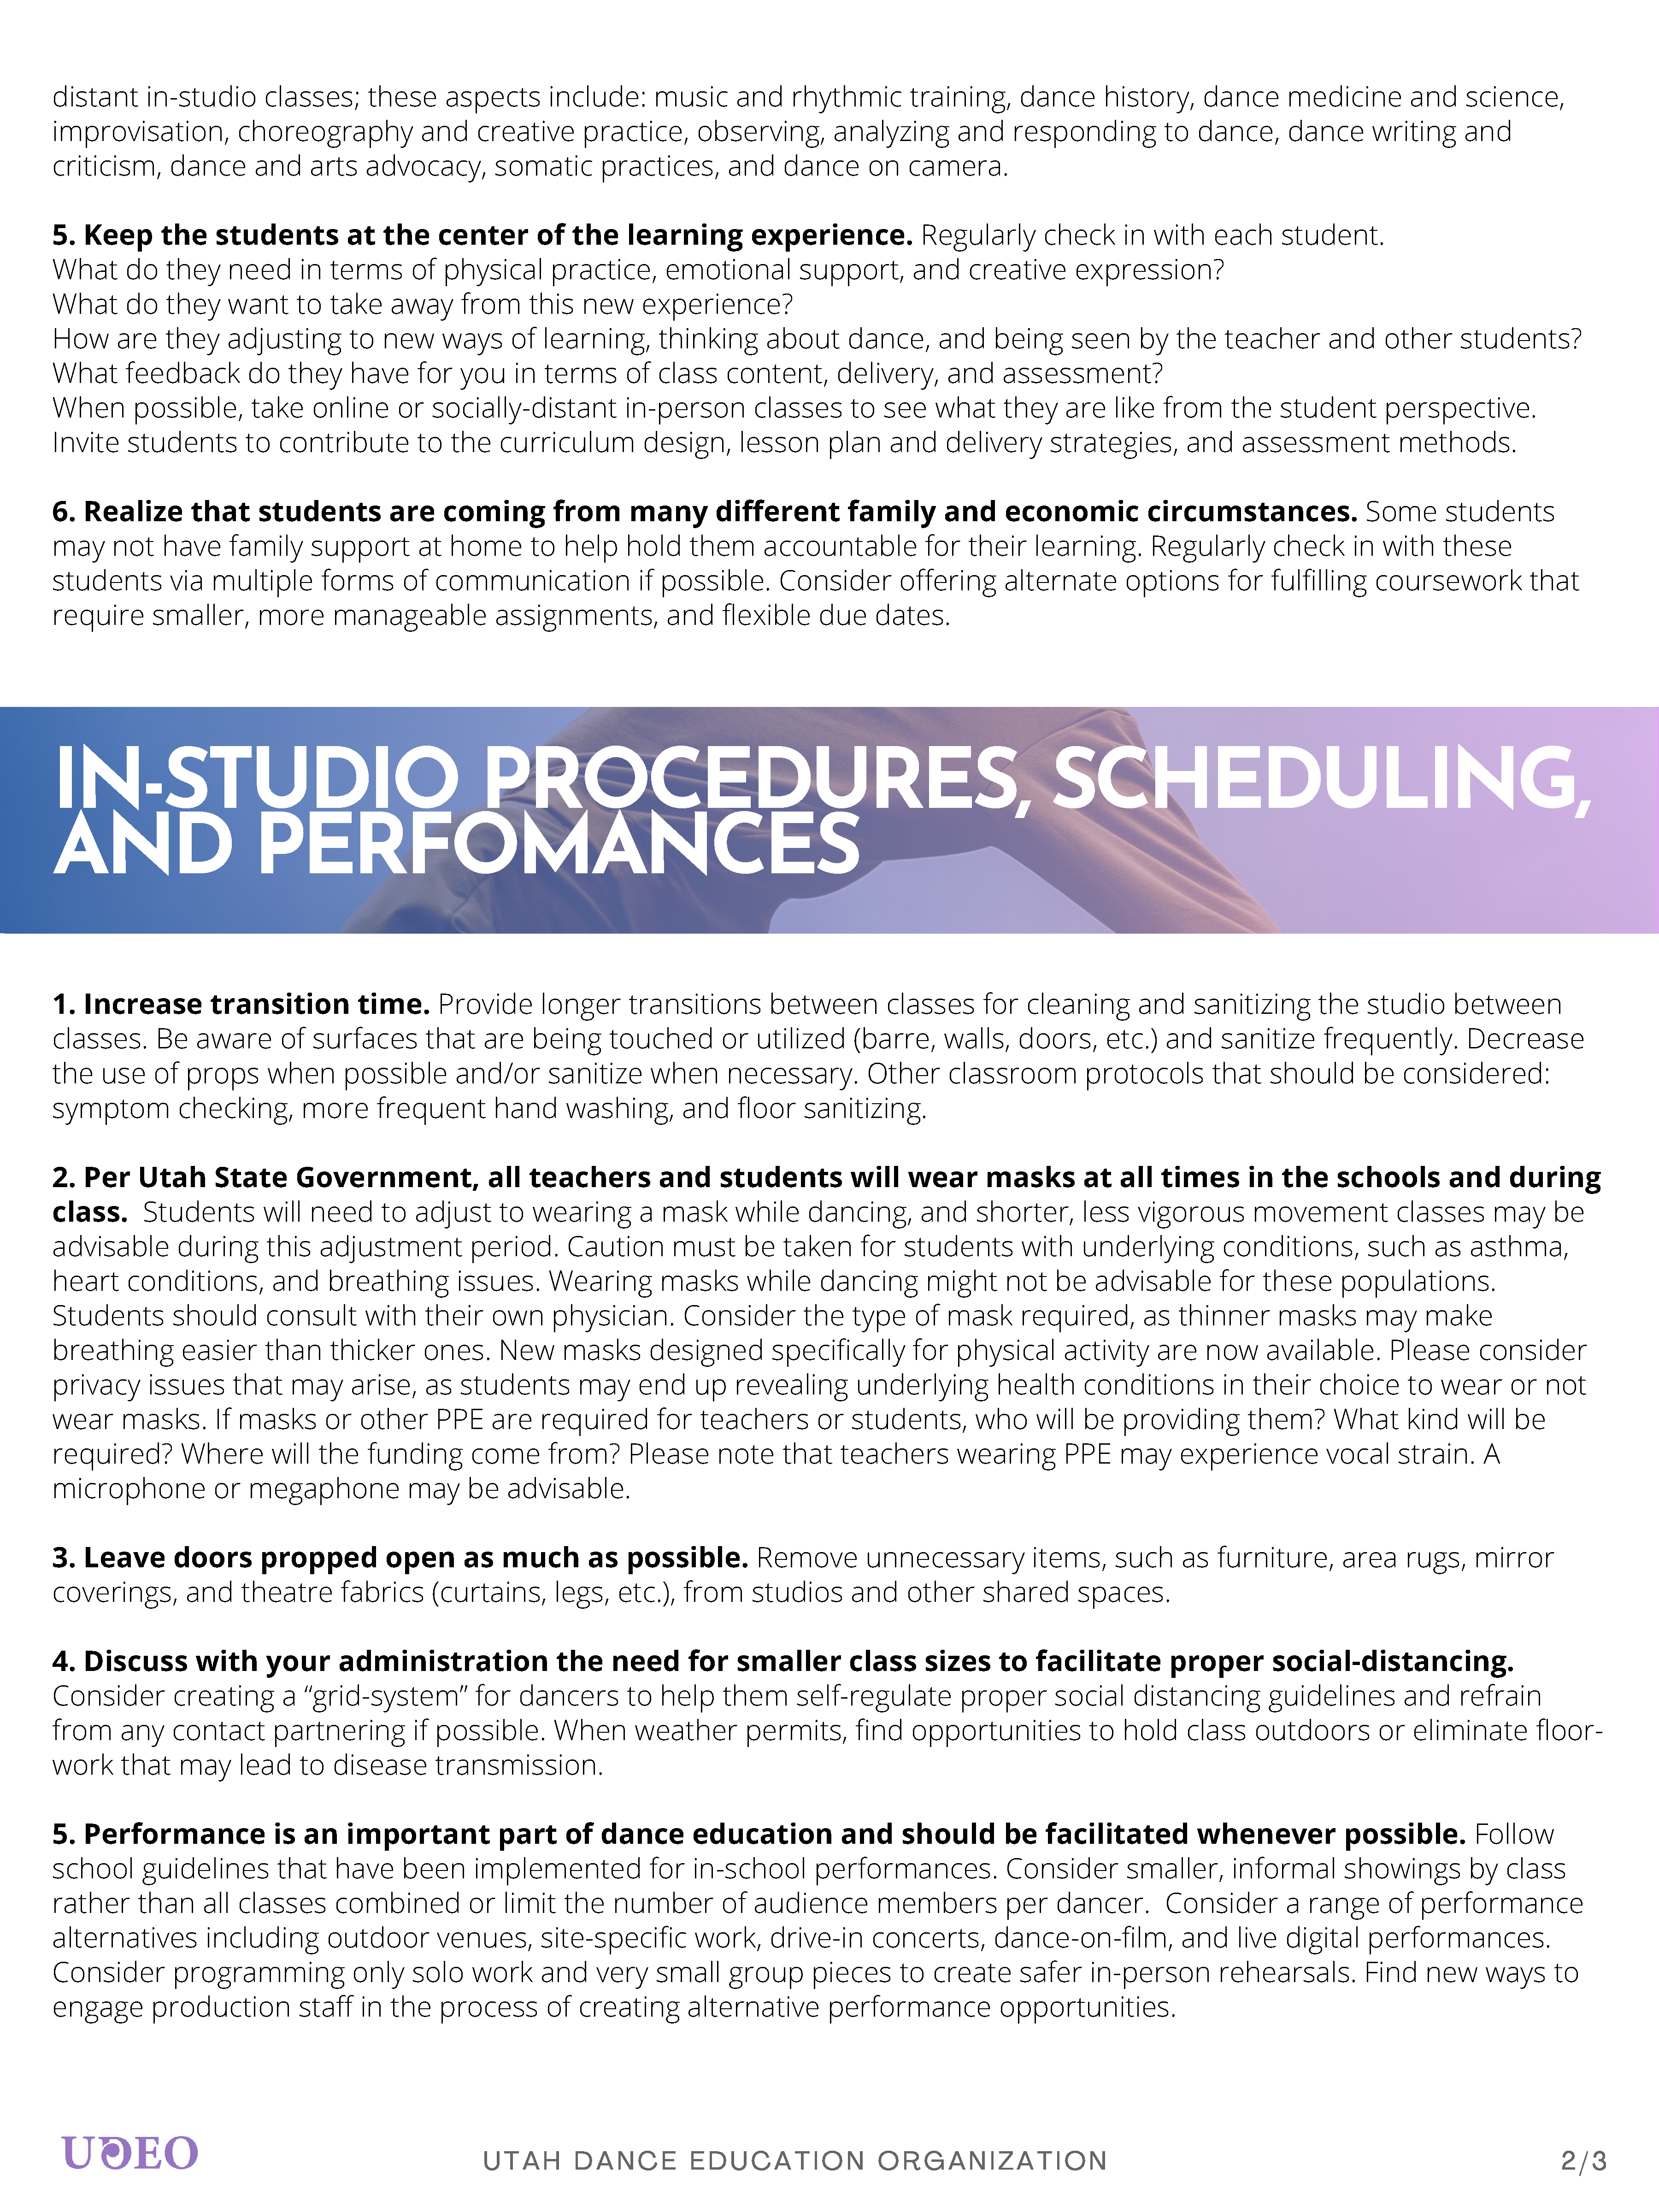 UDEO_Covid_19_Guidelines_Page_2